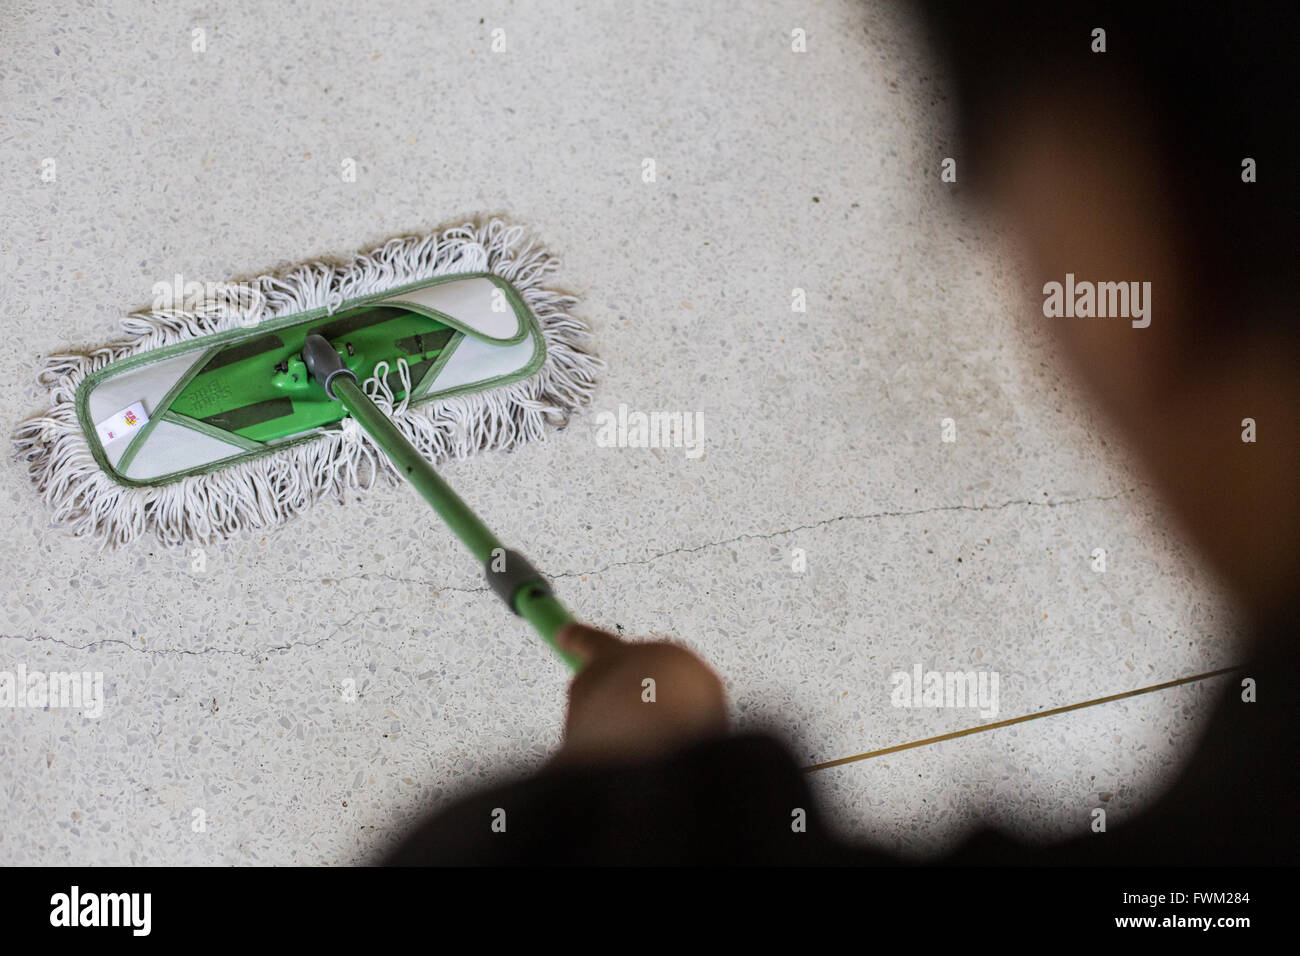 Cropped Image Of Person Cleaning Floor With Mop - Stock Image